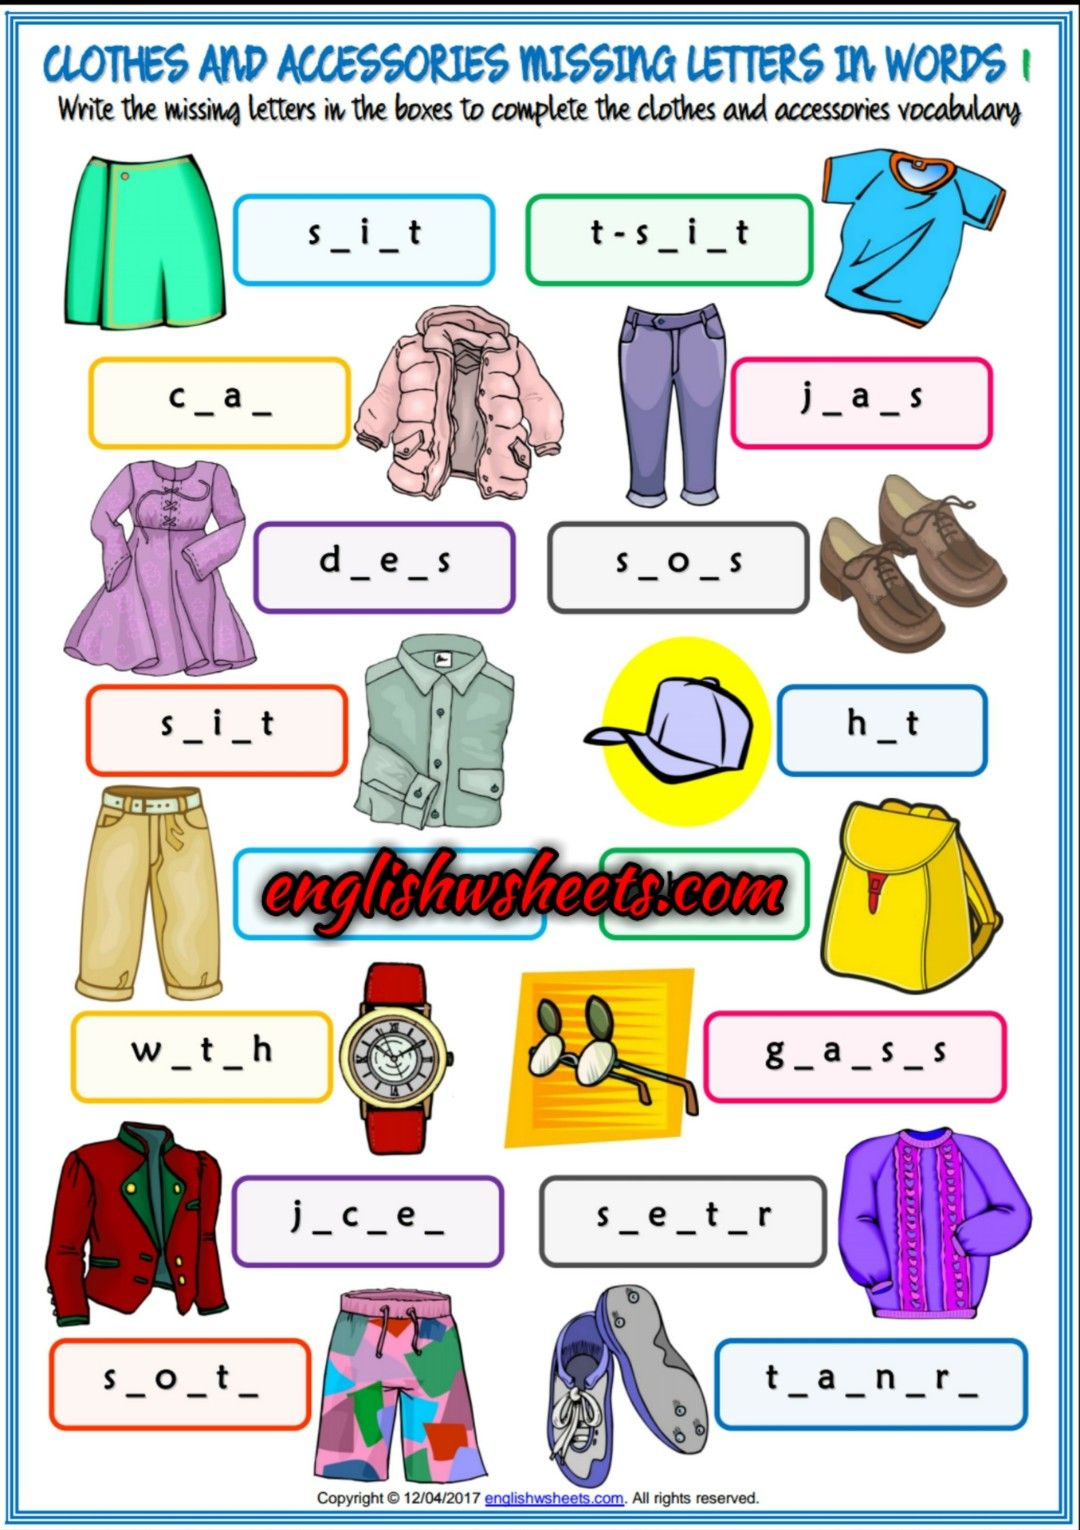 Clothes and Accessories Esl Printable Missing Letters in Words ...